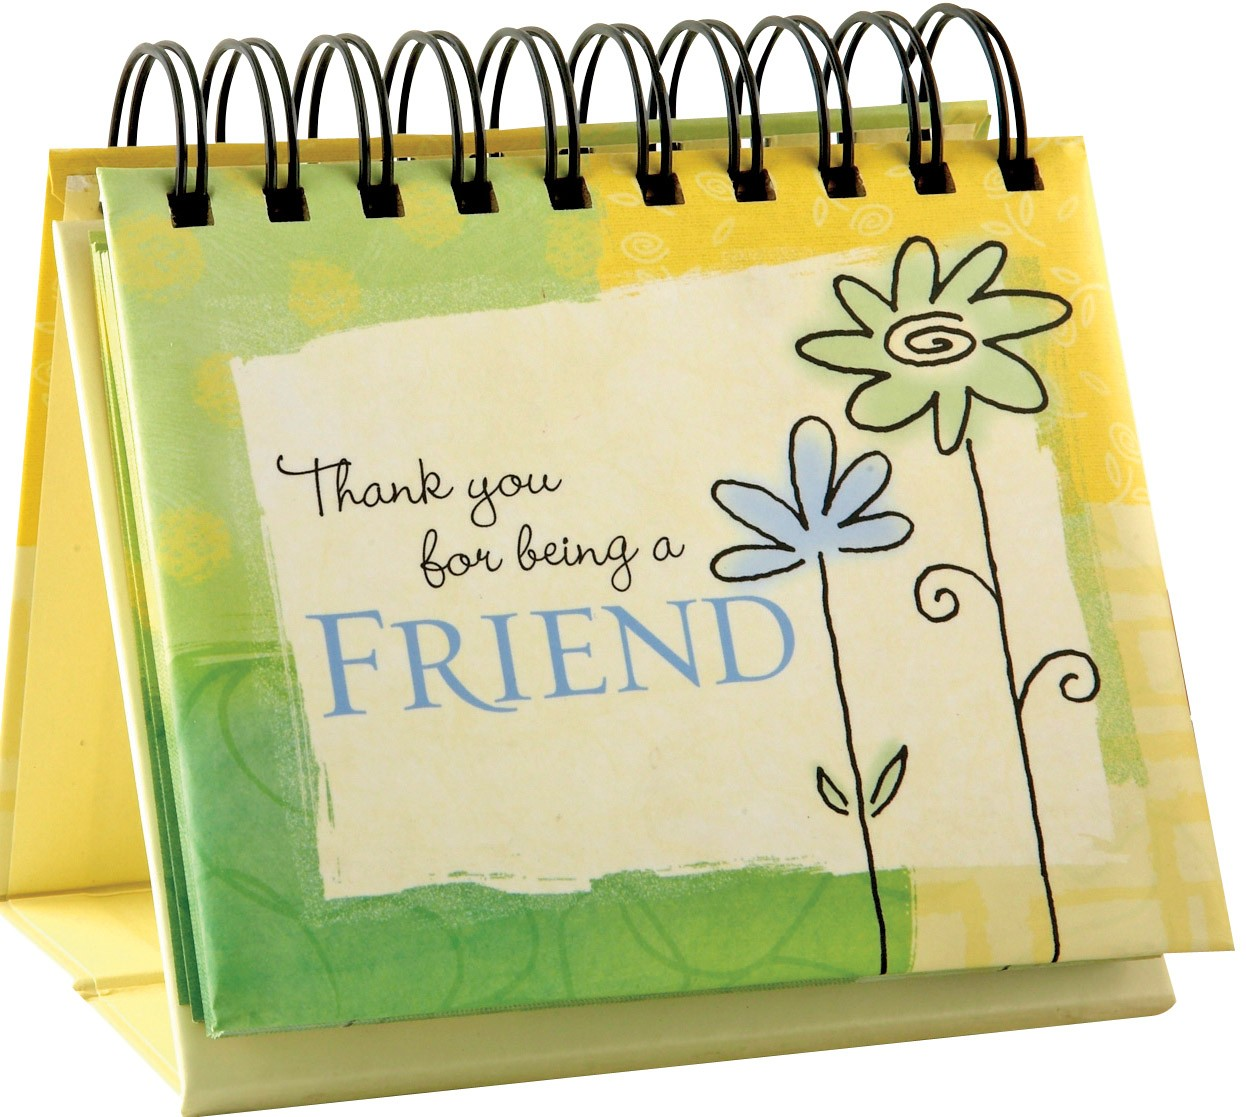 quotes for saying thank you